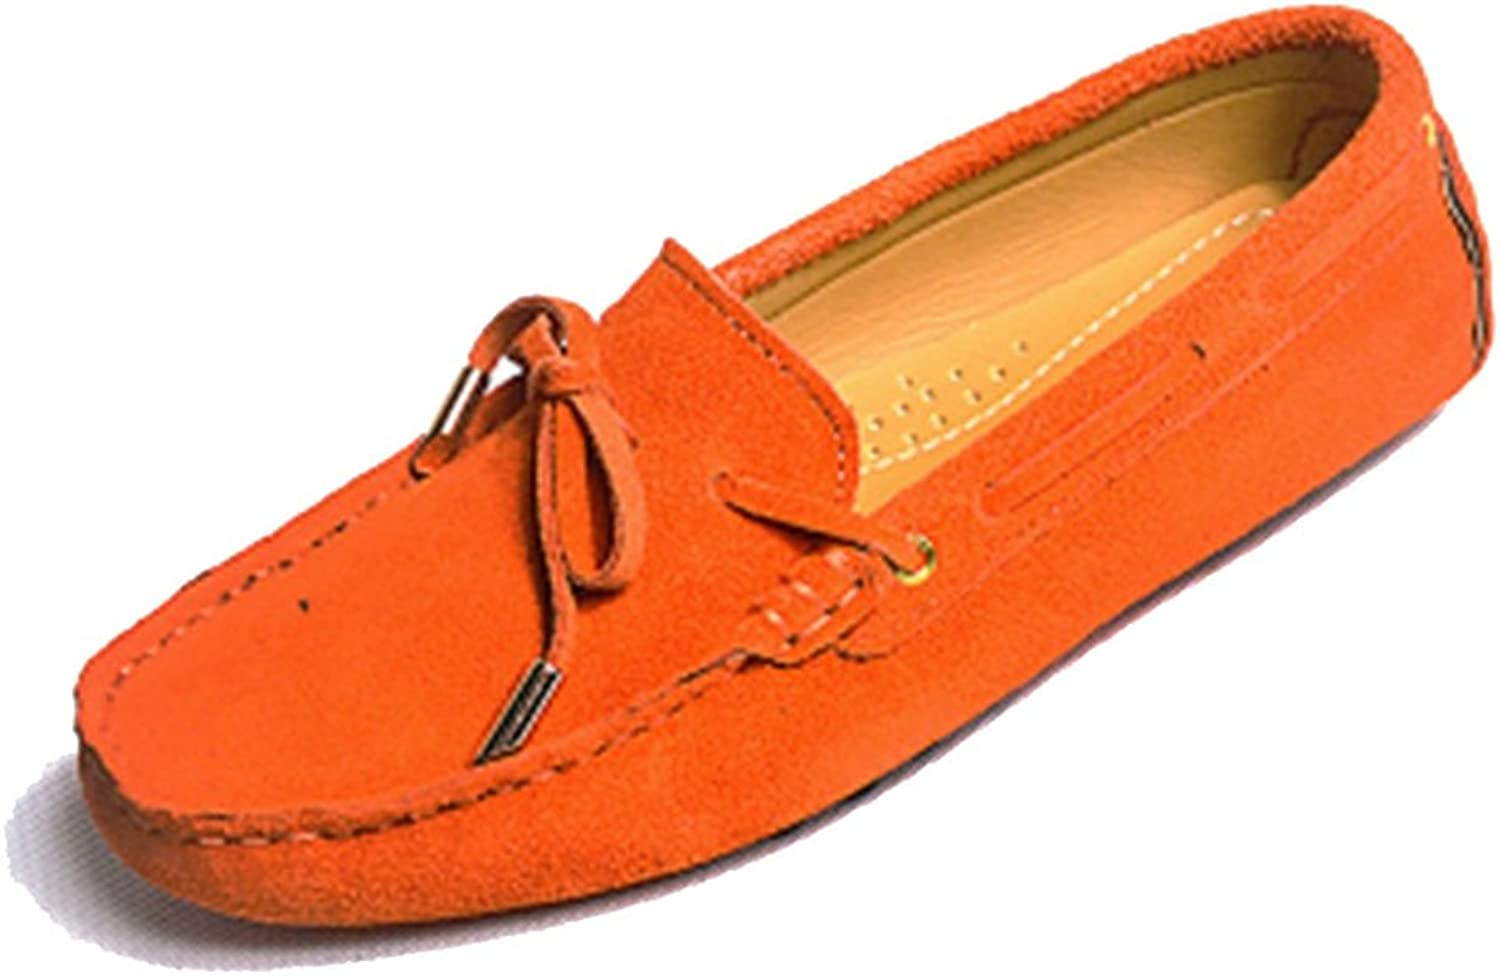 LL STUDIO Womens Casual Bowknot Driving Walking Penny Loafers Flats Boat shoes